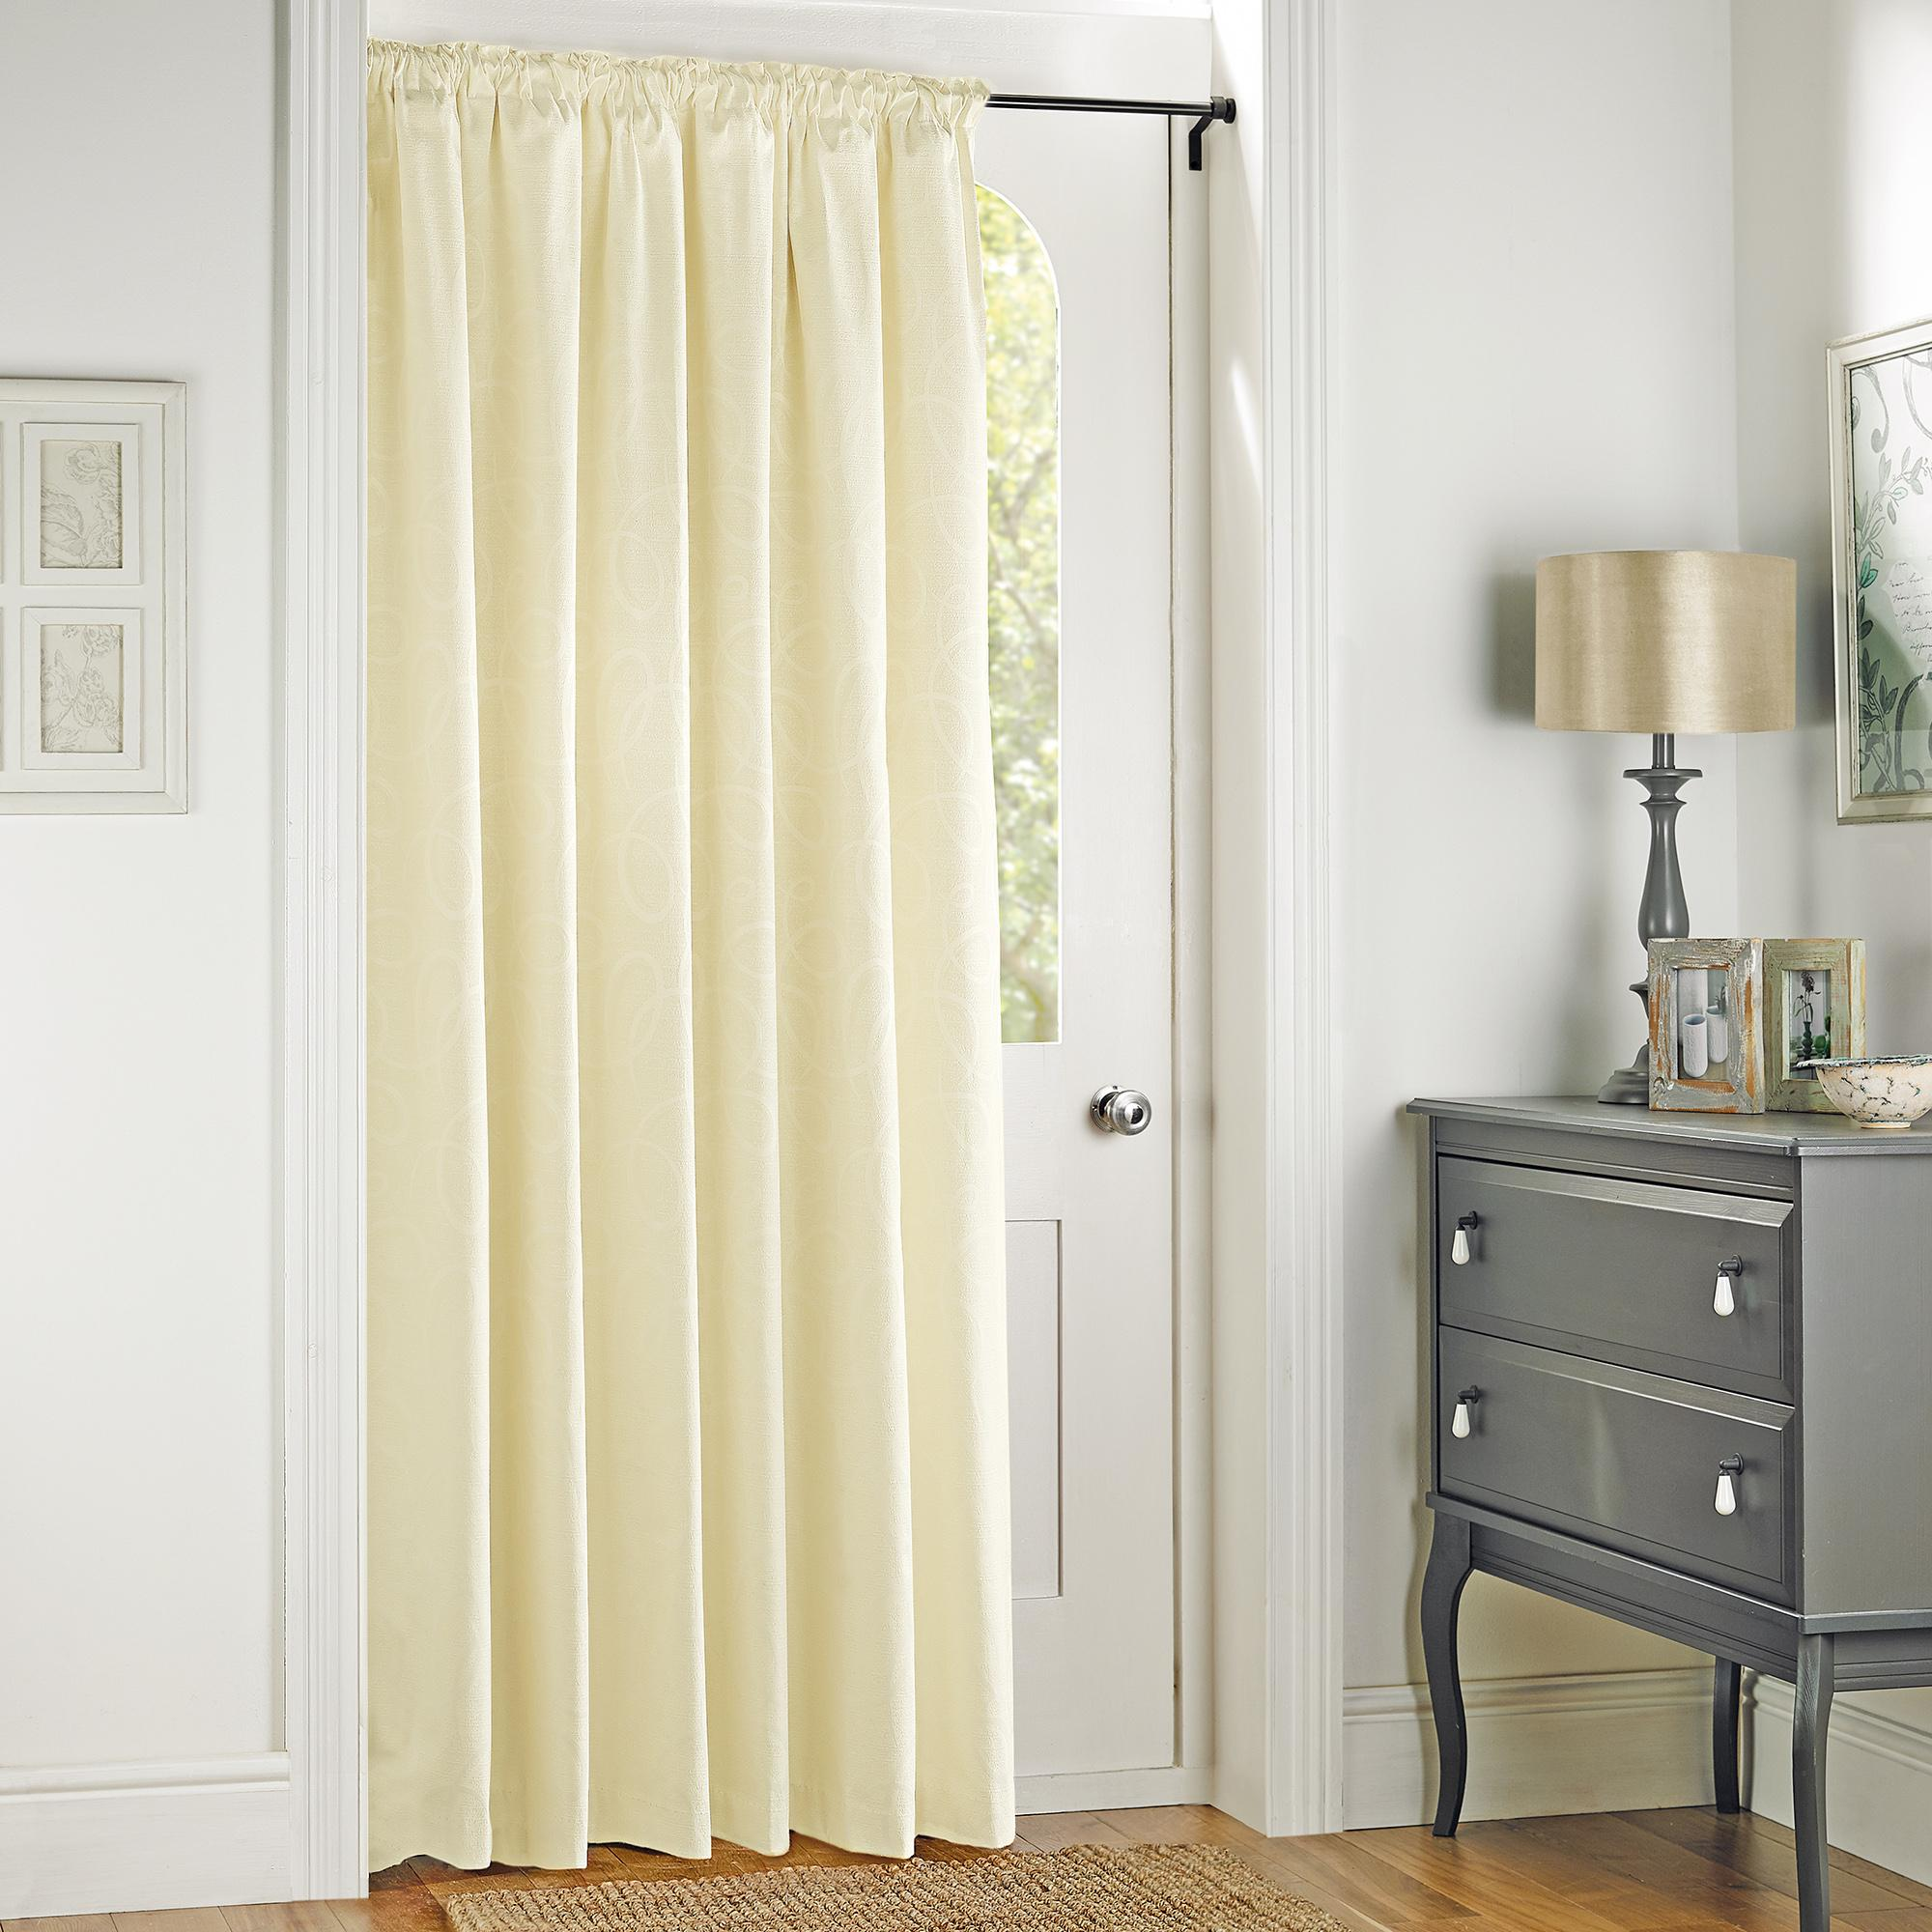 door curtains toledo cream thermal pencil pleat door curtain BMNFKDQ